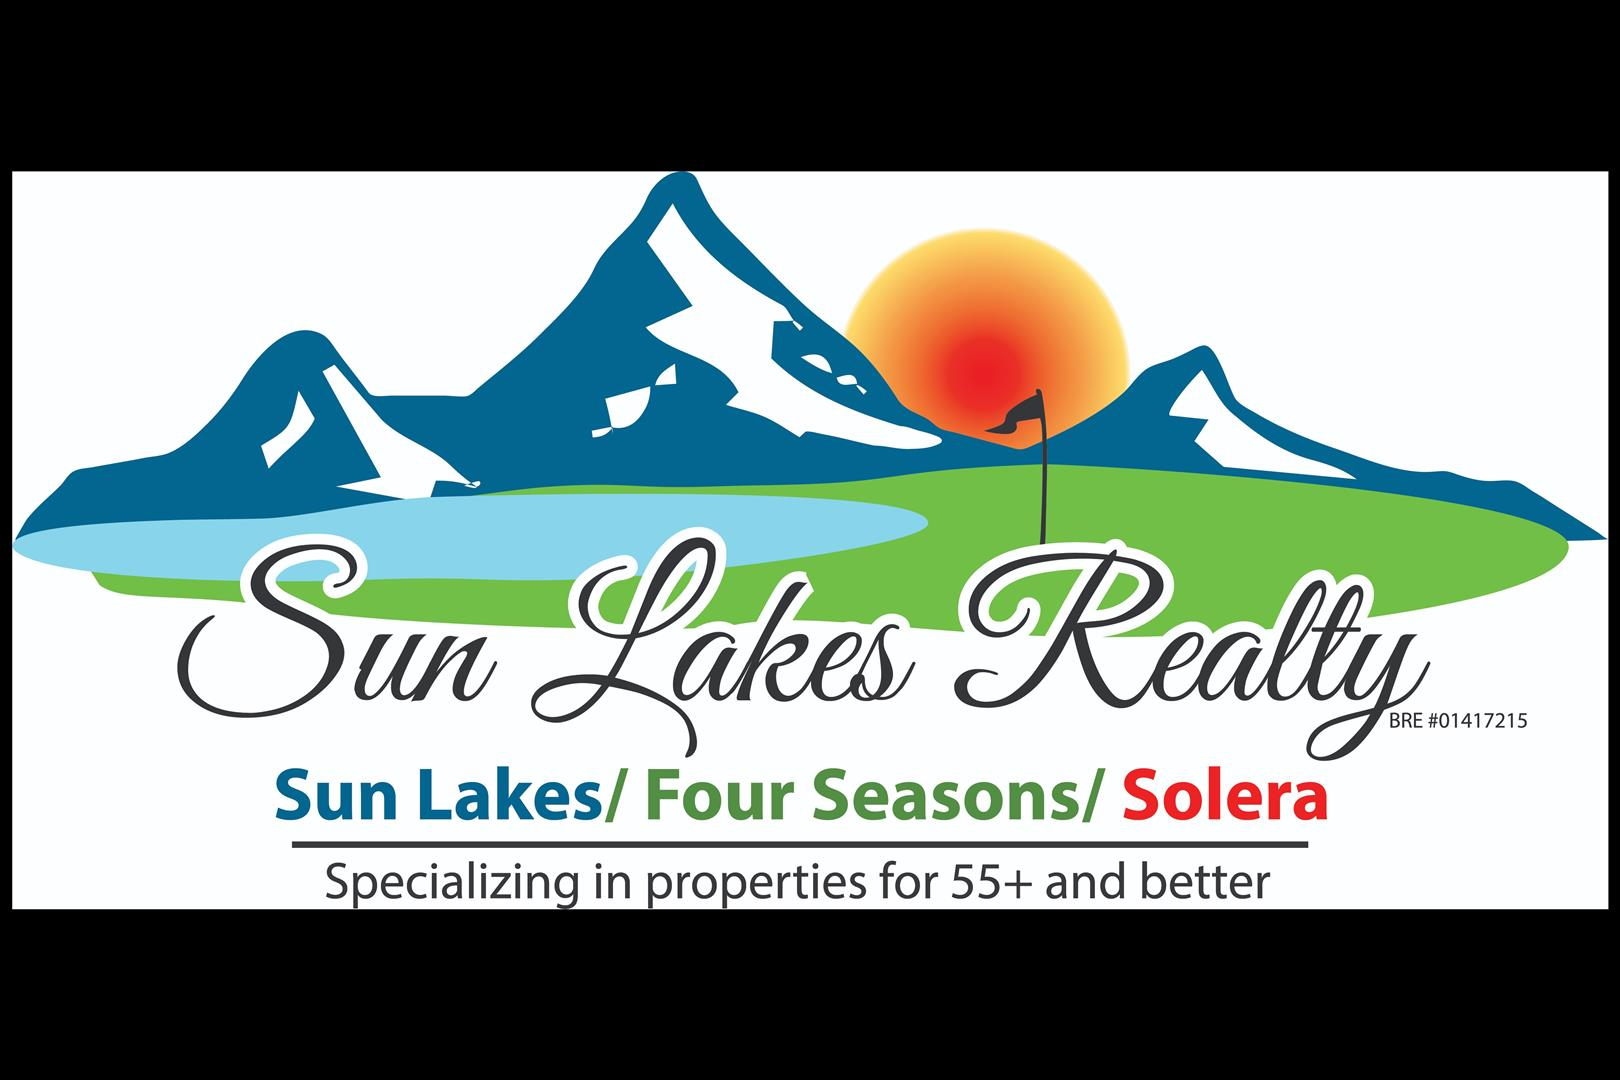 SUN LAKES REALTY, INC